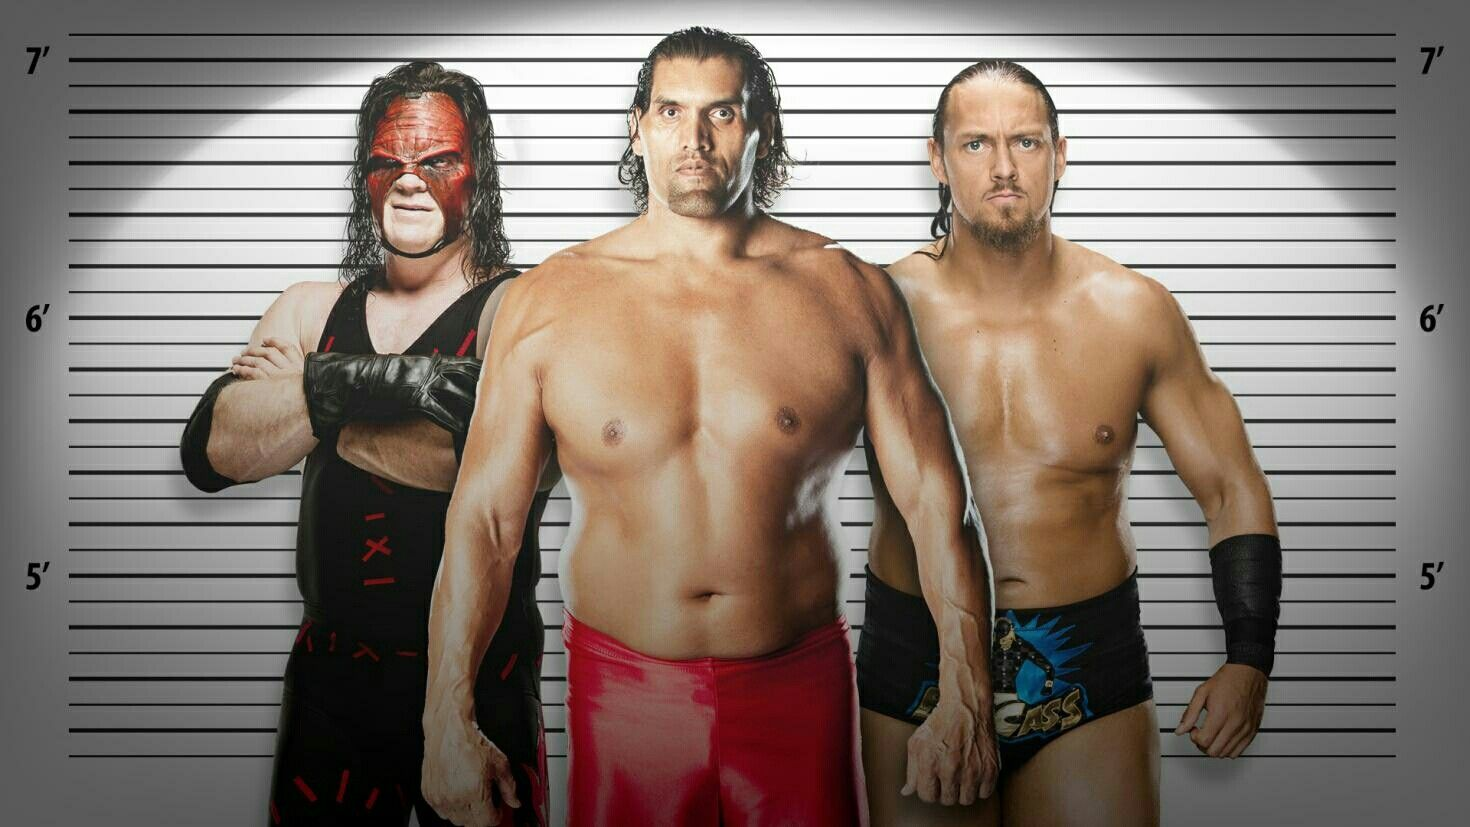 Andre the giant and the big show and big cass and kane and - Diva big man ...